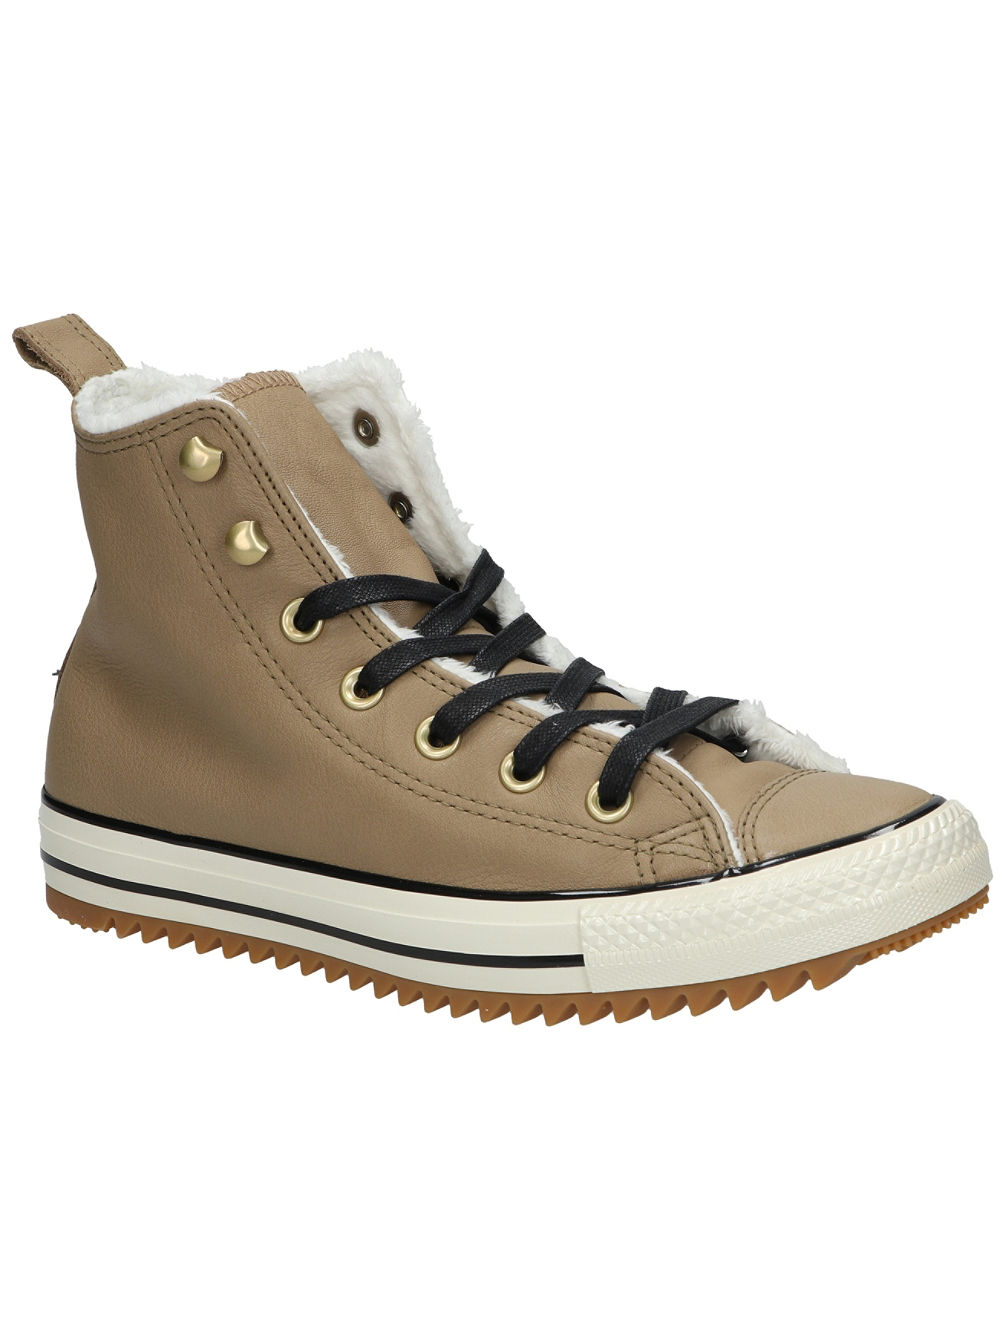 a187dae77776 Buy Converse Chuck Taylor All Star Hiker Shoes online at Blue Tomato